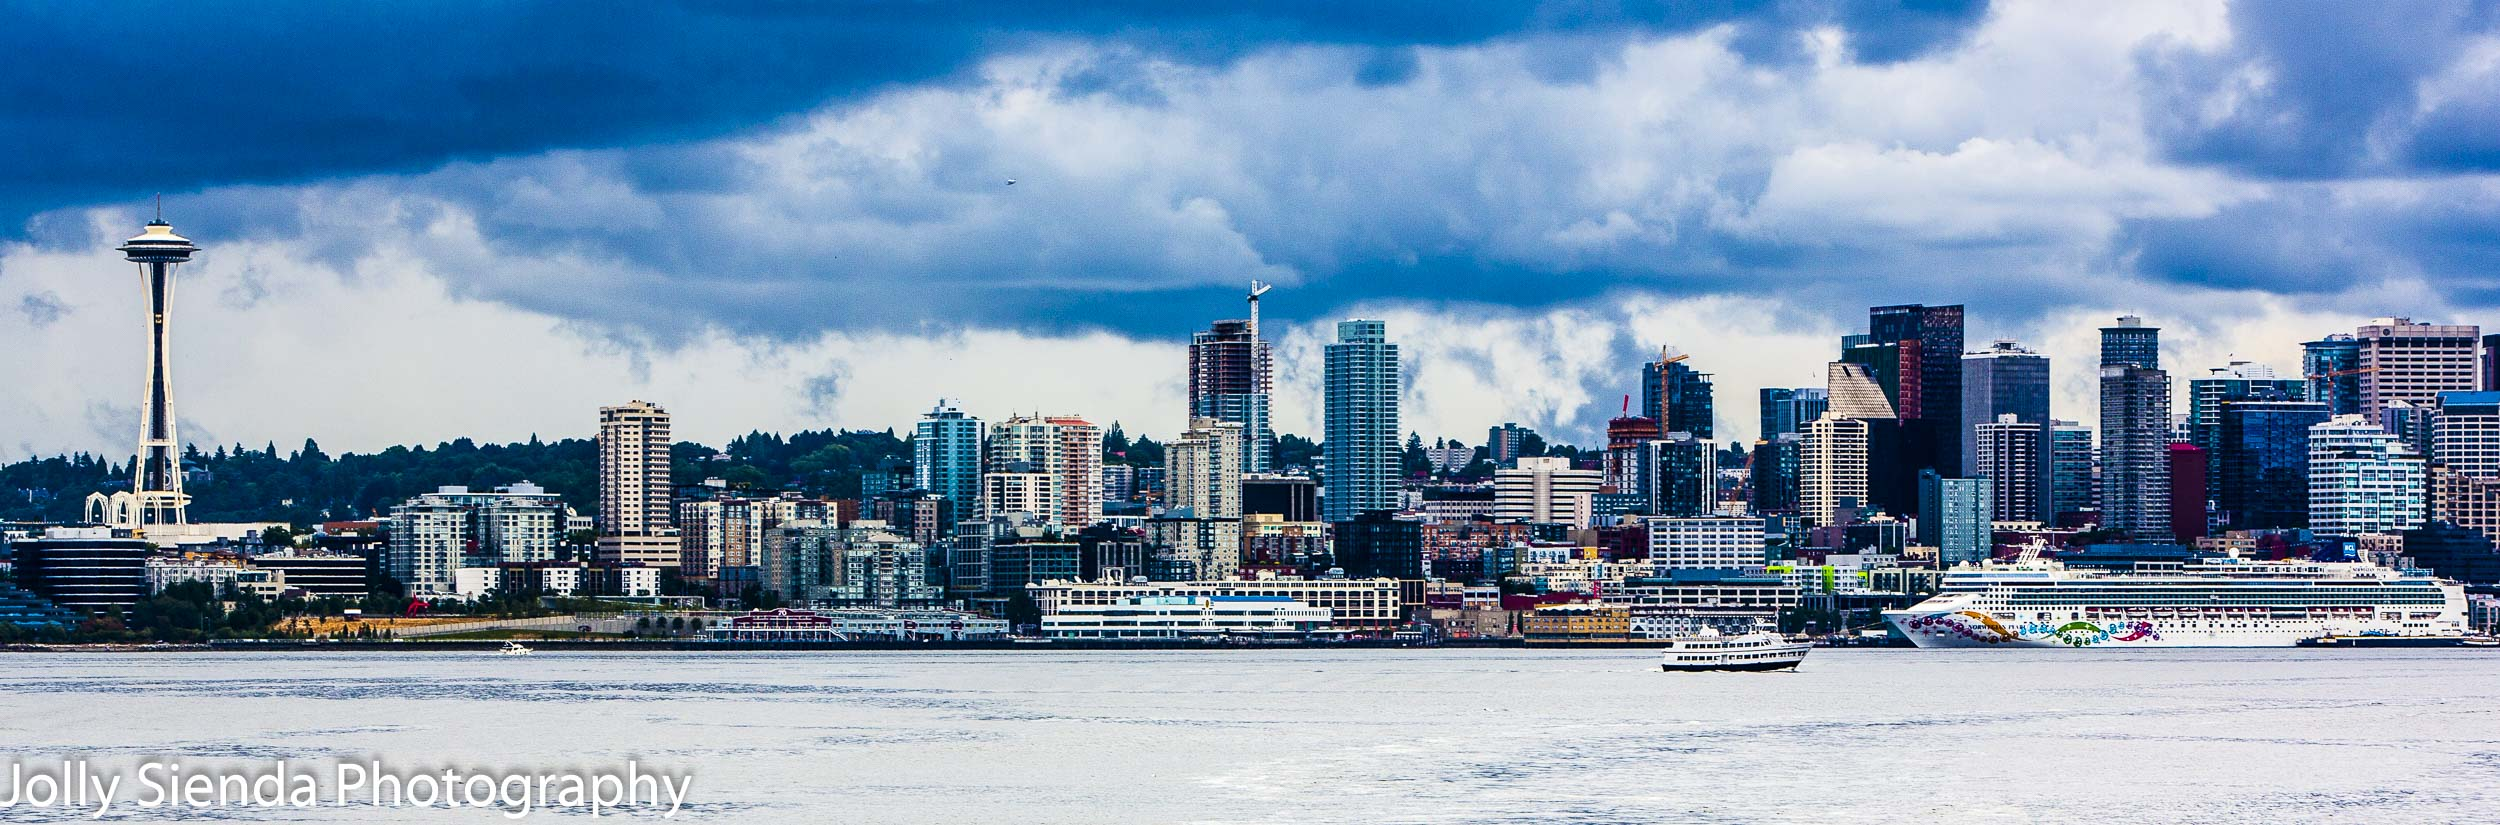 Seattle city skyline from Elliot Bay with the Space Needle and a